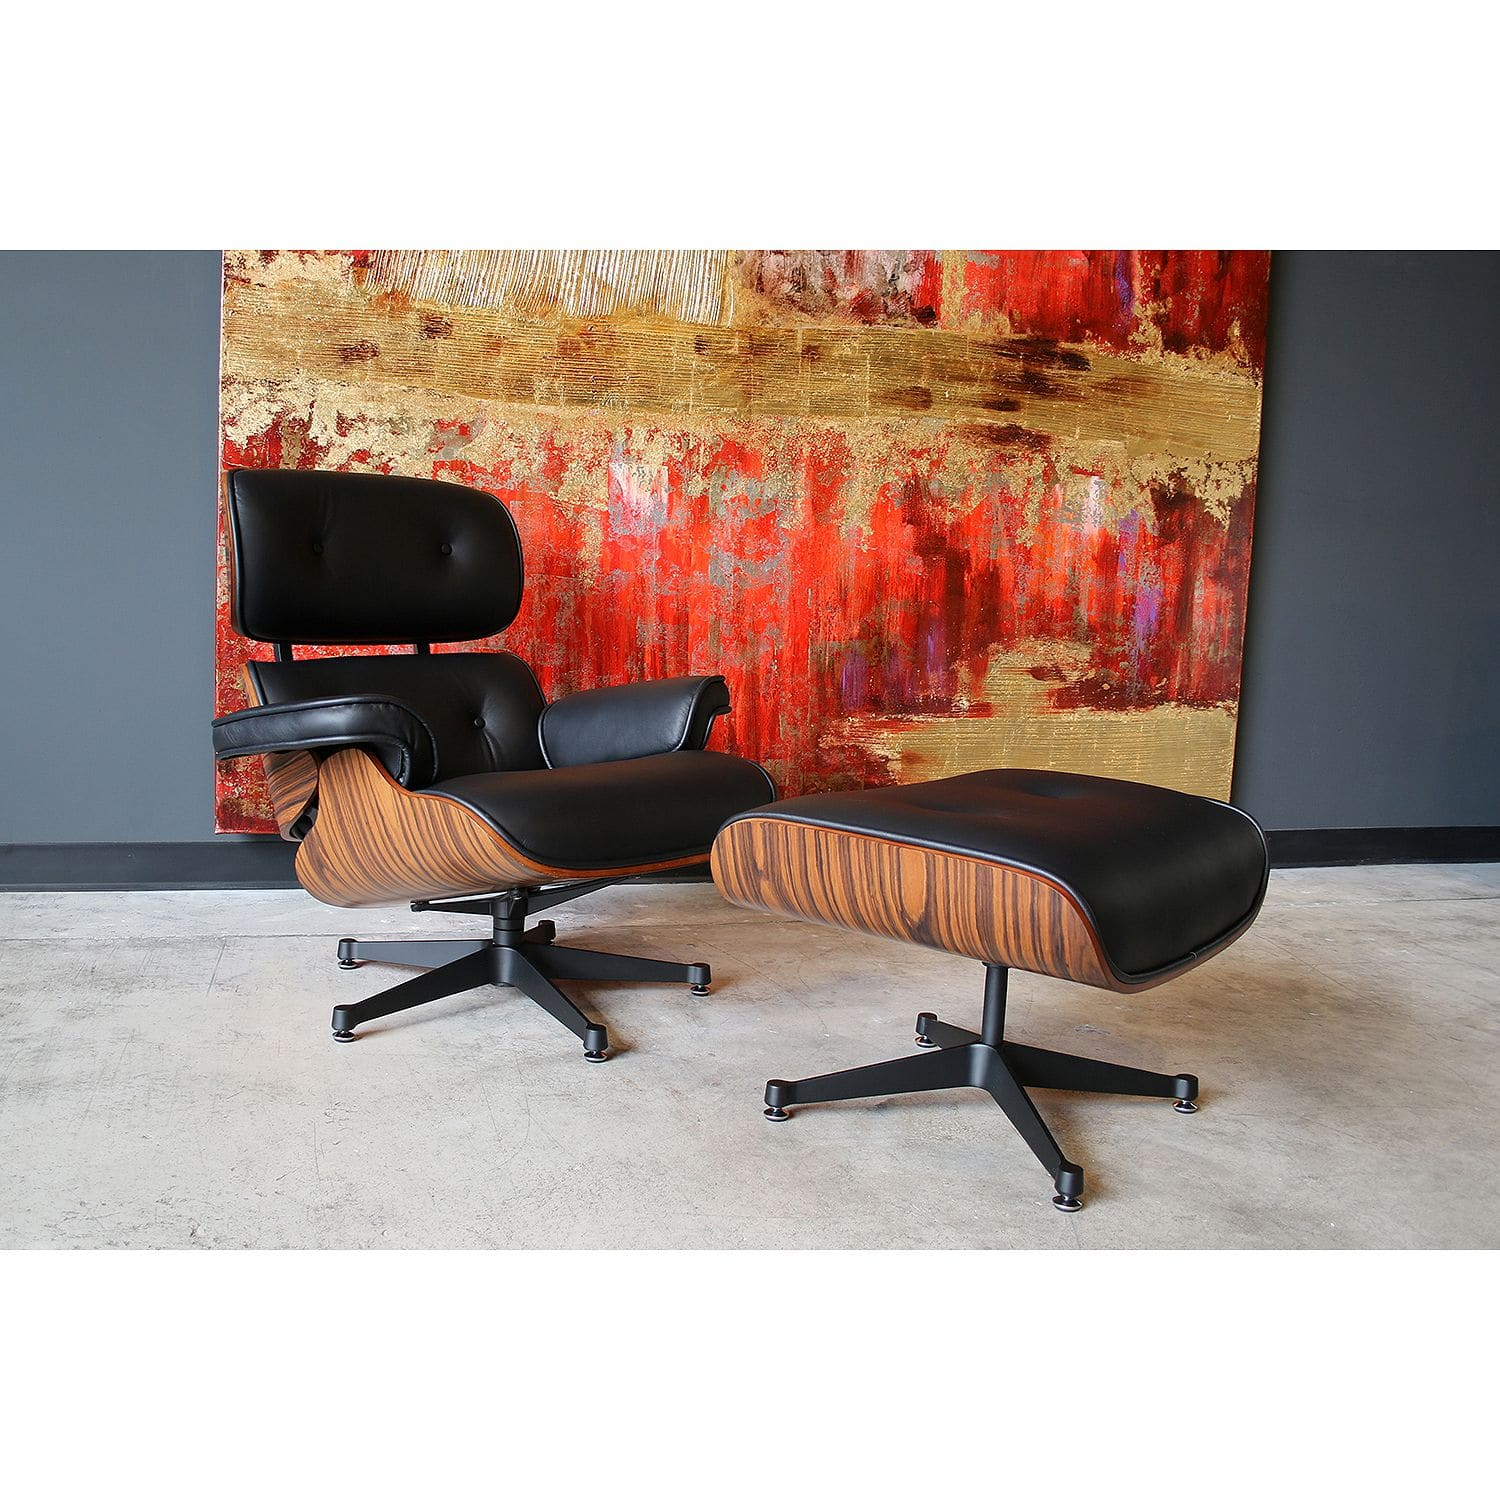 Herman Miller Authentic Eames Lounge Chair and Ottoman $3999 00